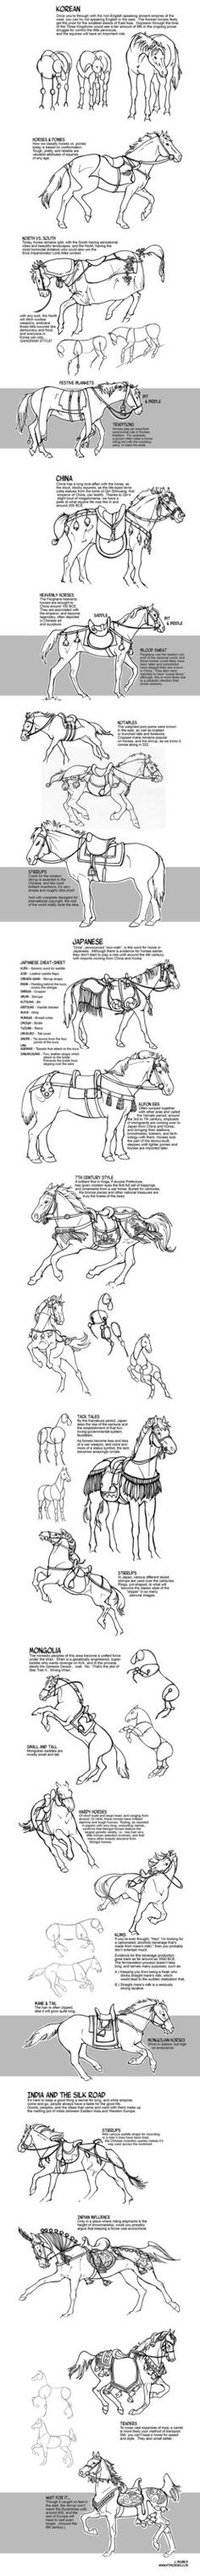 Historic Asian Horses by sketcherjak on DeviantArt